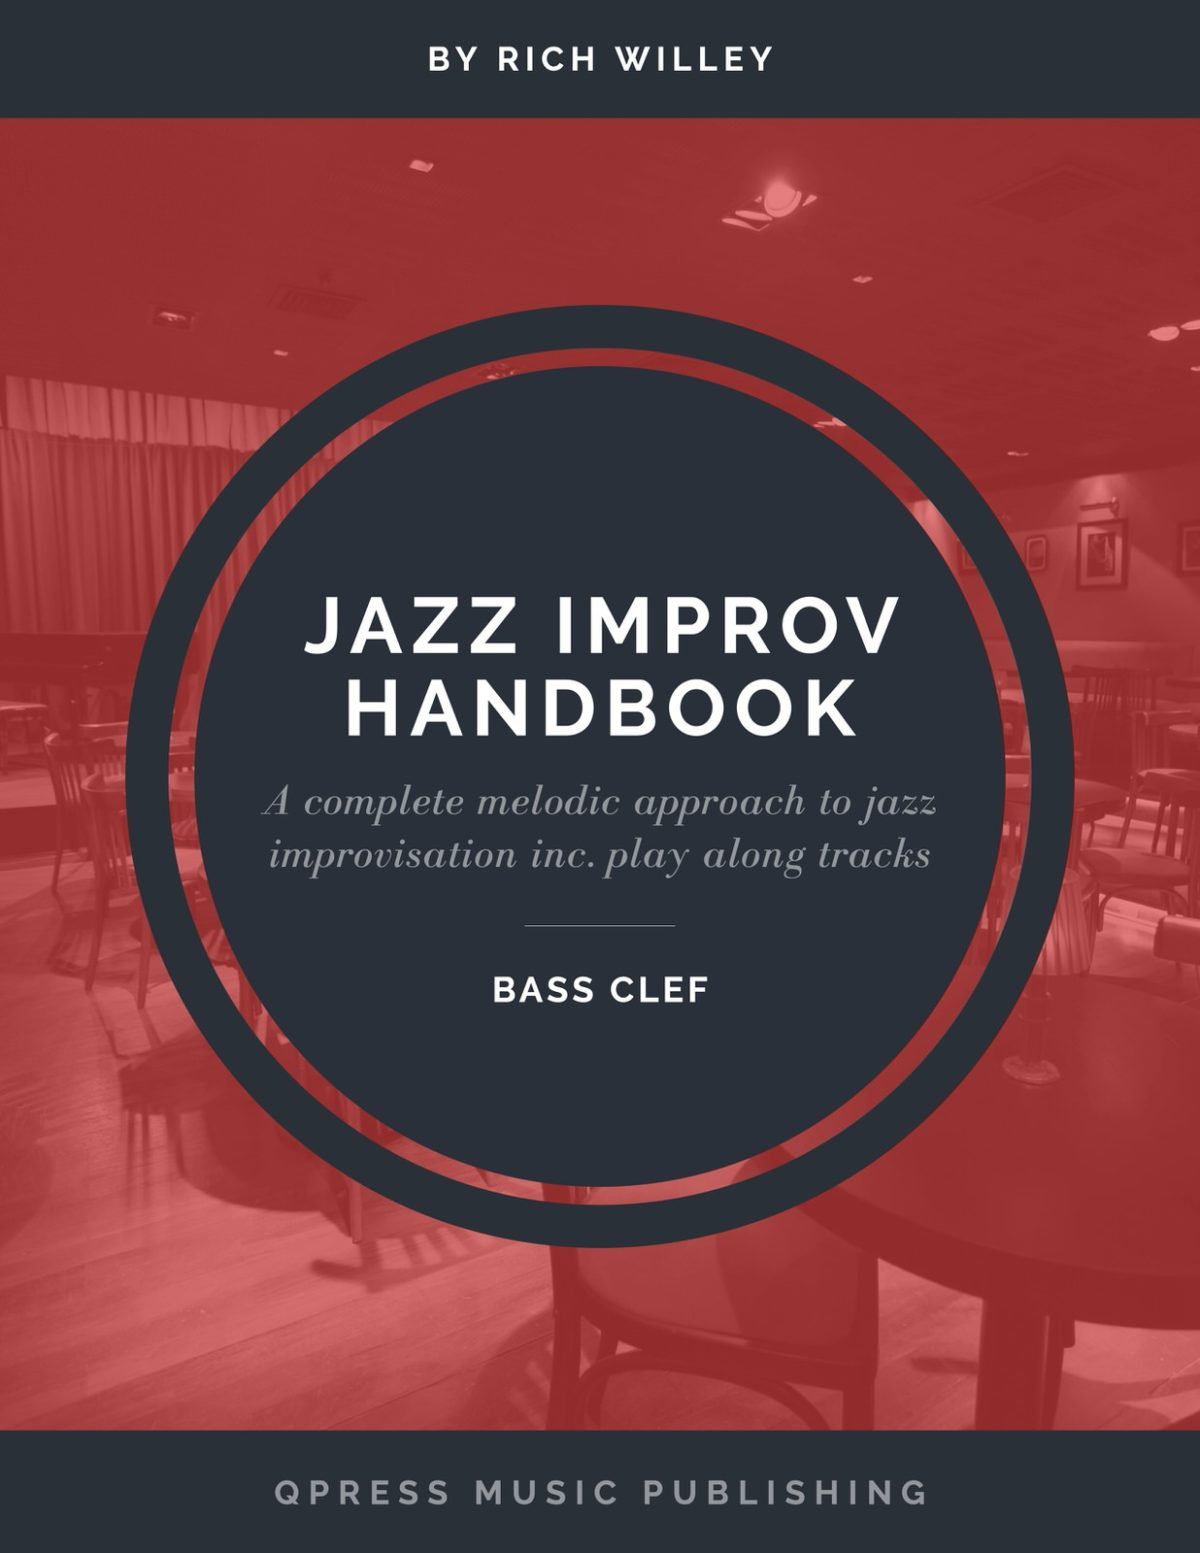 Willey, Jazz Improv Handbook Complete (Bass Clef)-p001